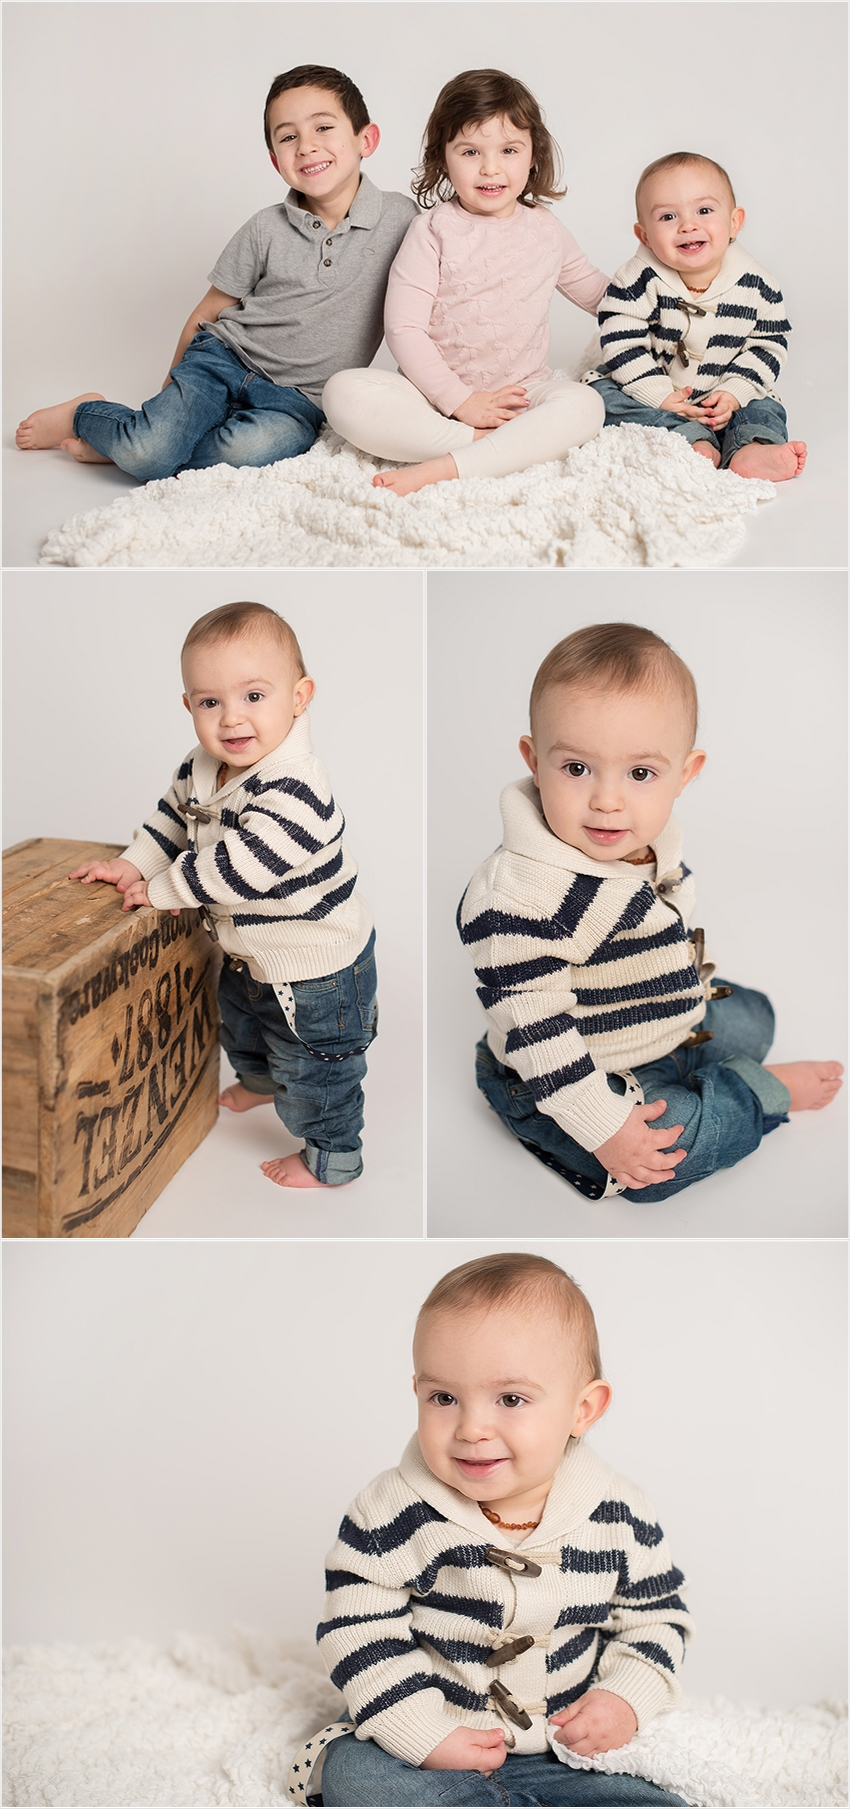 Abbotsford Family Photographer One Year Old Luca 002 (Side 2)